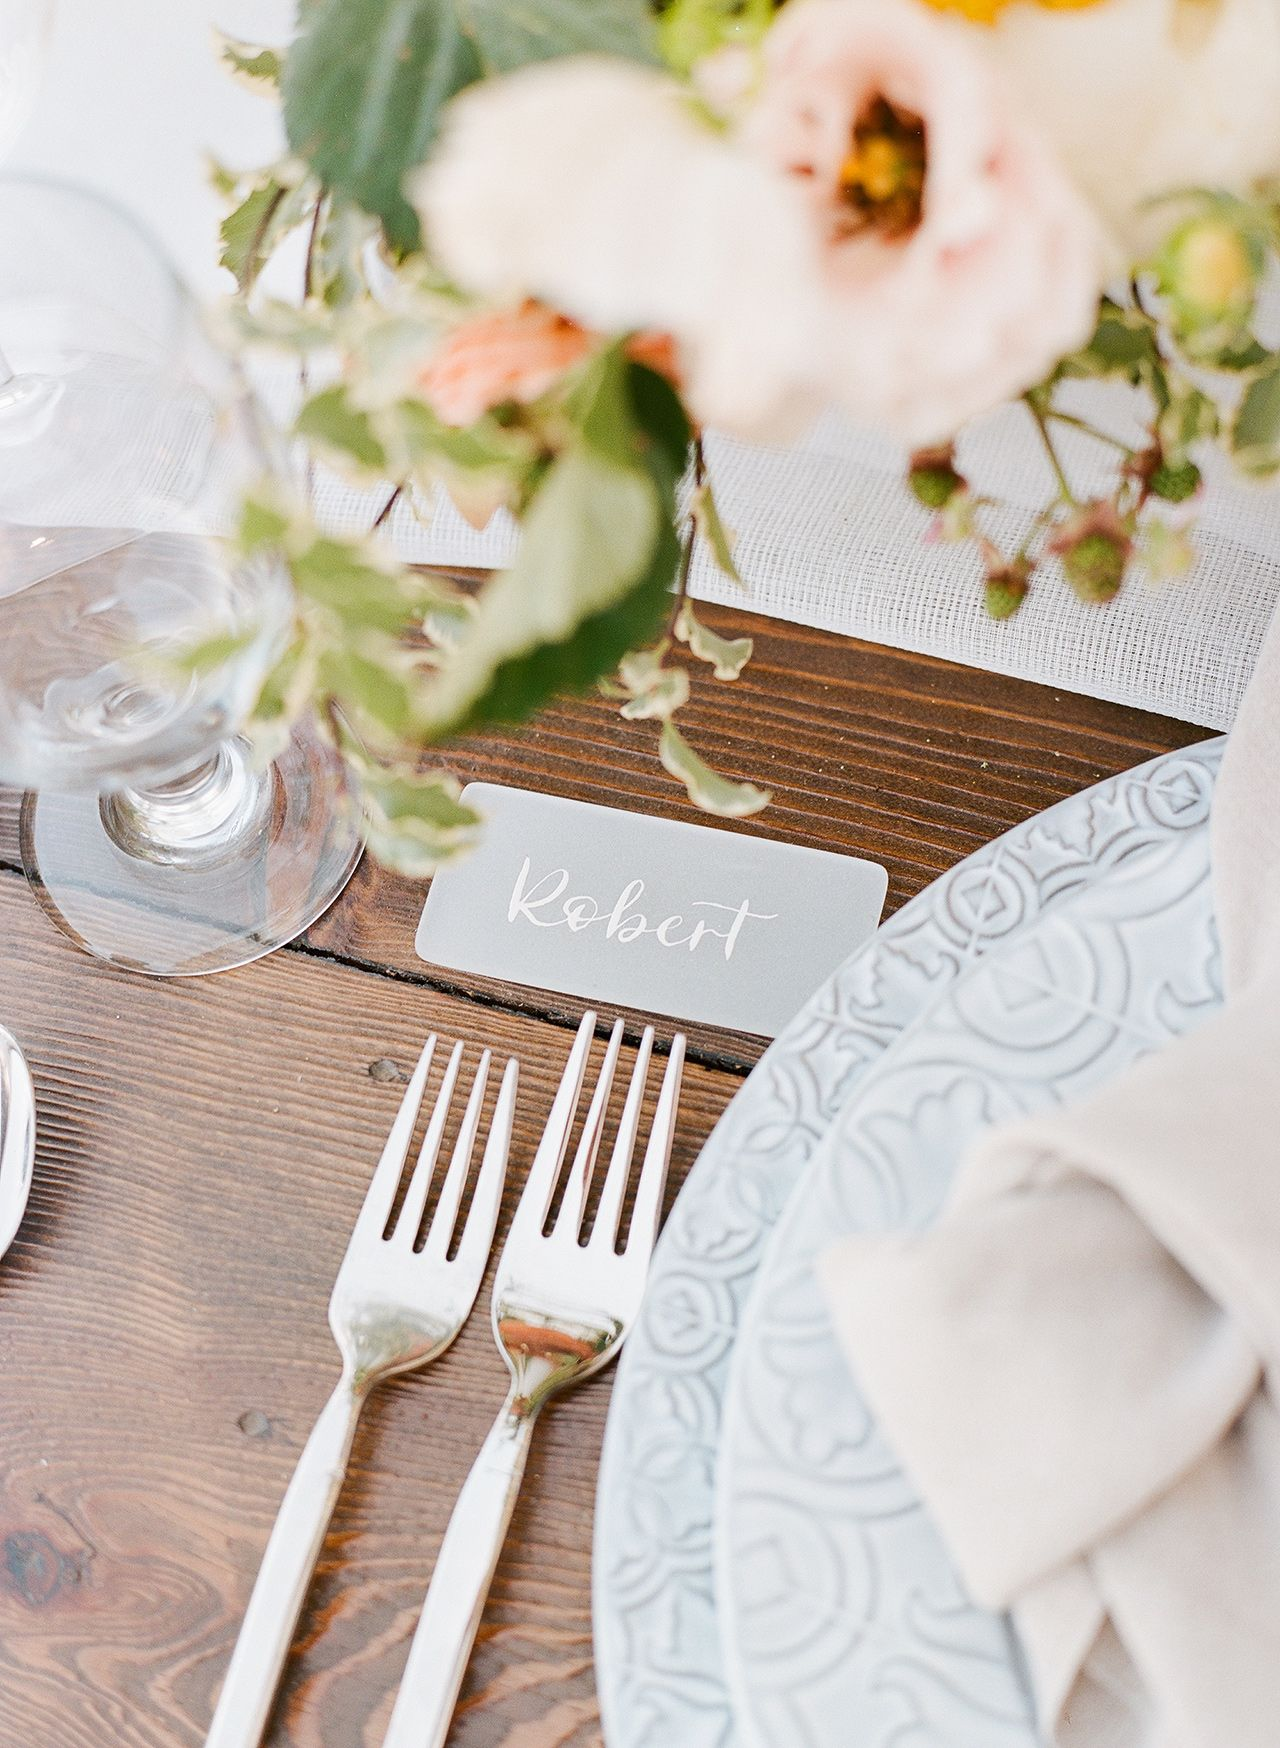 Guests at this relaxed romantic destination wedding in